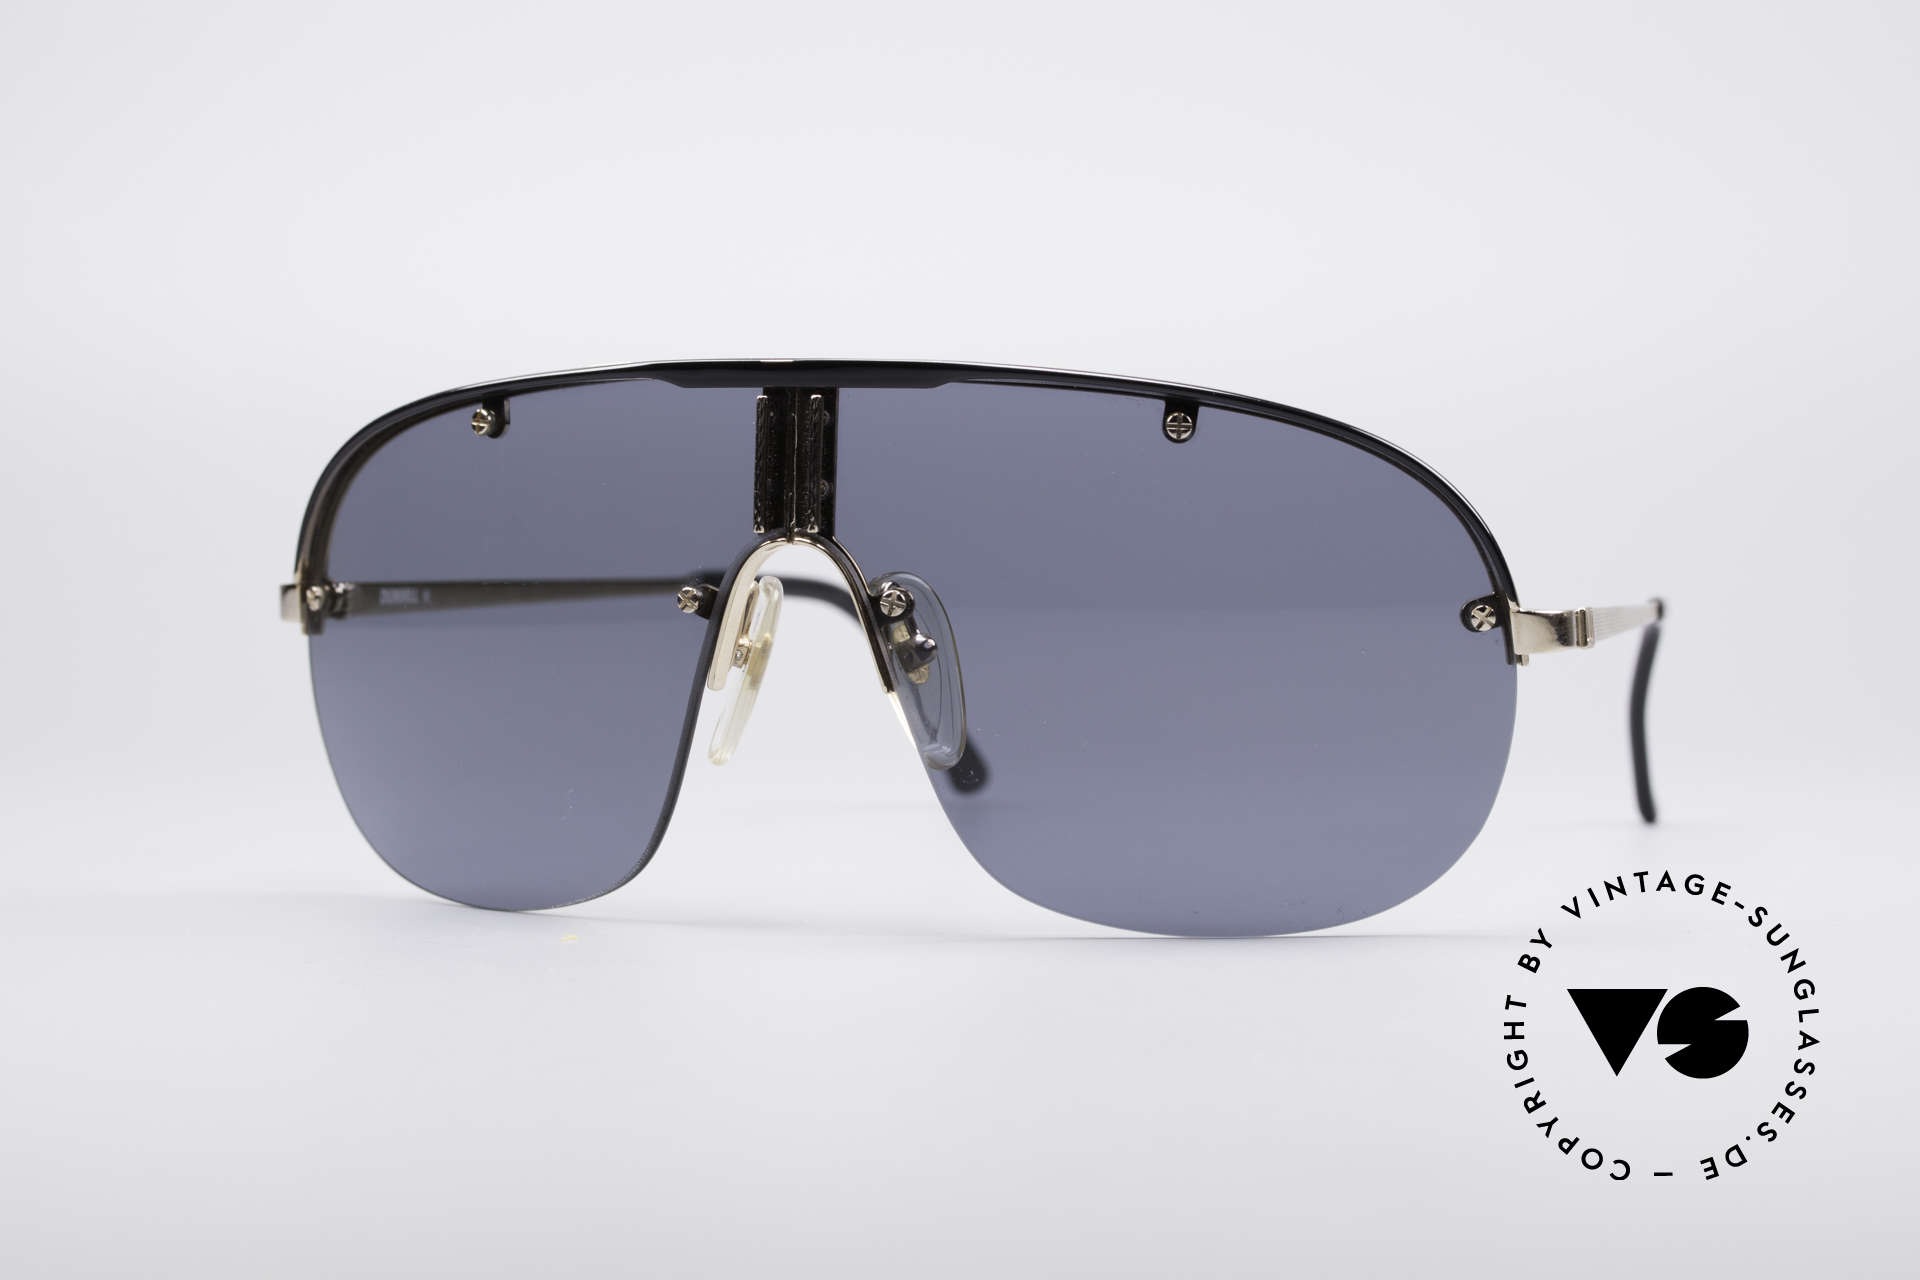 Dunhill 6102 90's Men's Shades, stylish men's sunglasses by Alfred Dunhill from 1990, Made for Men